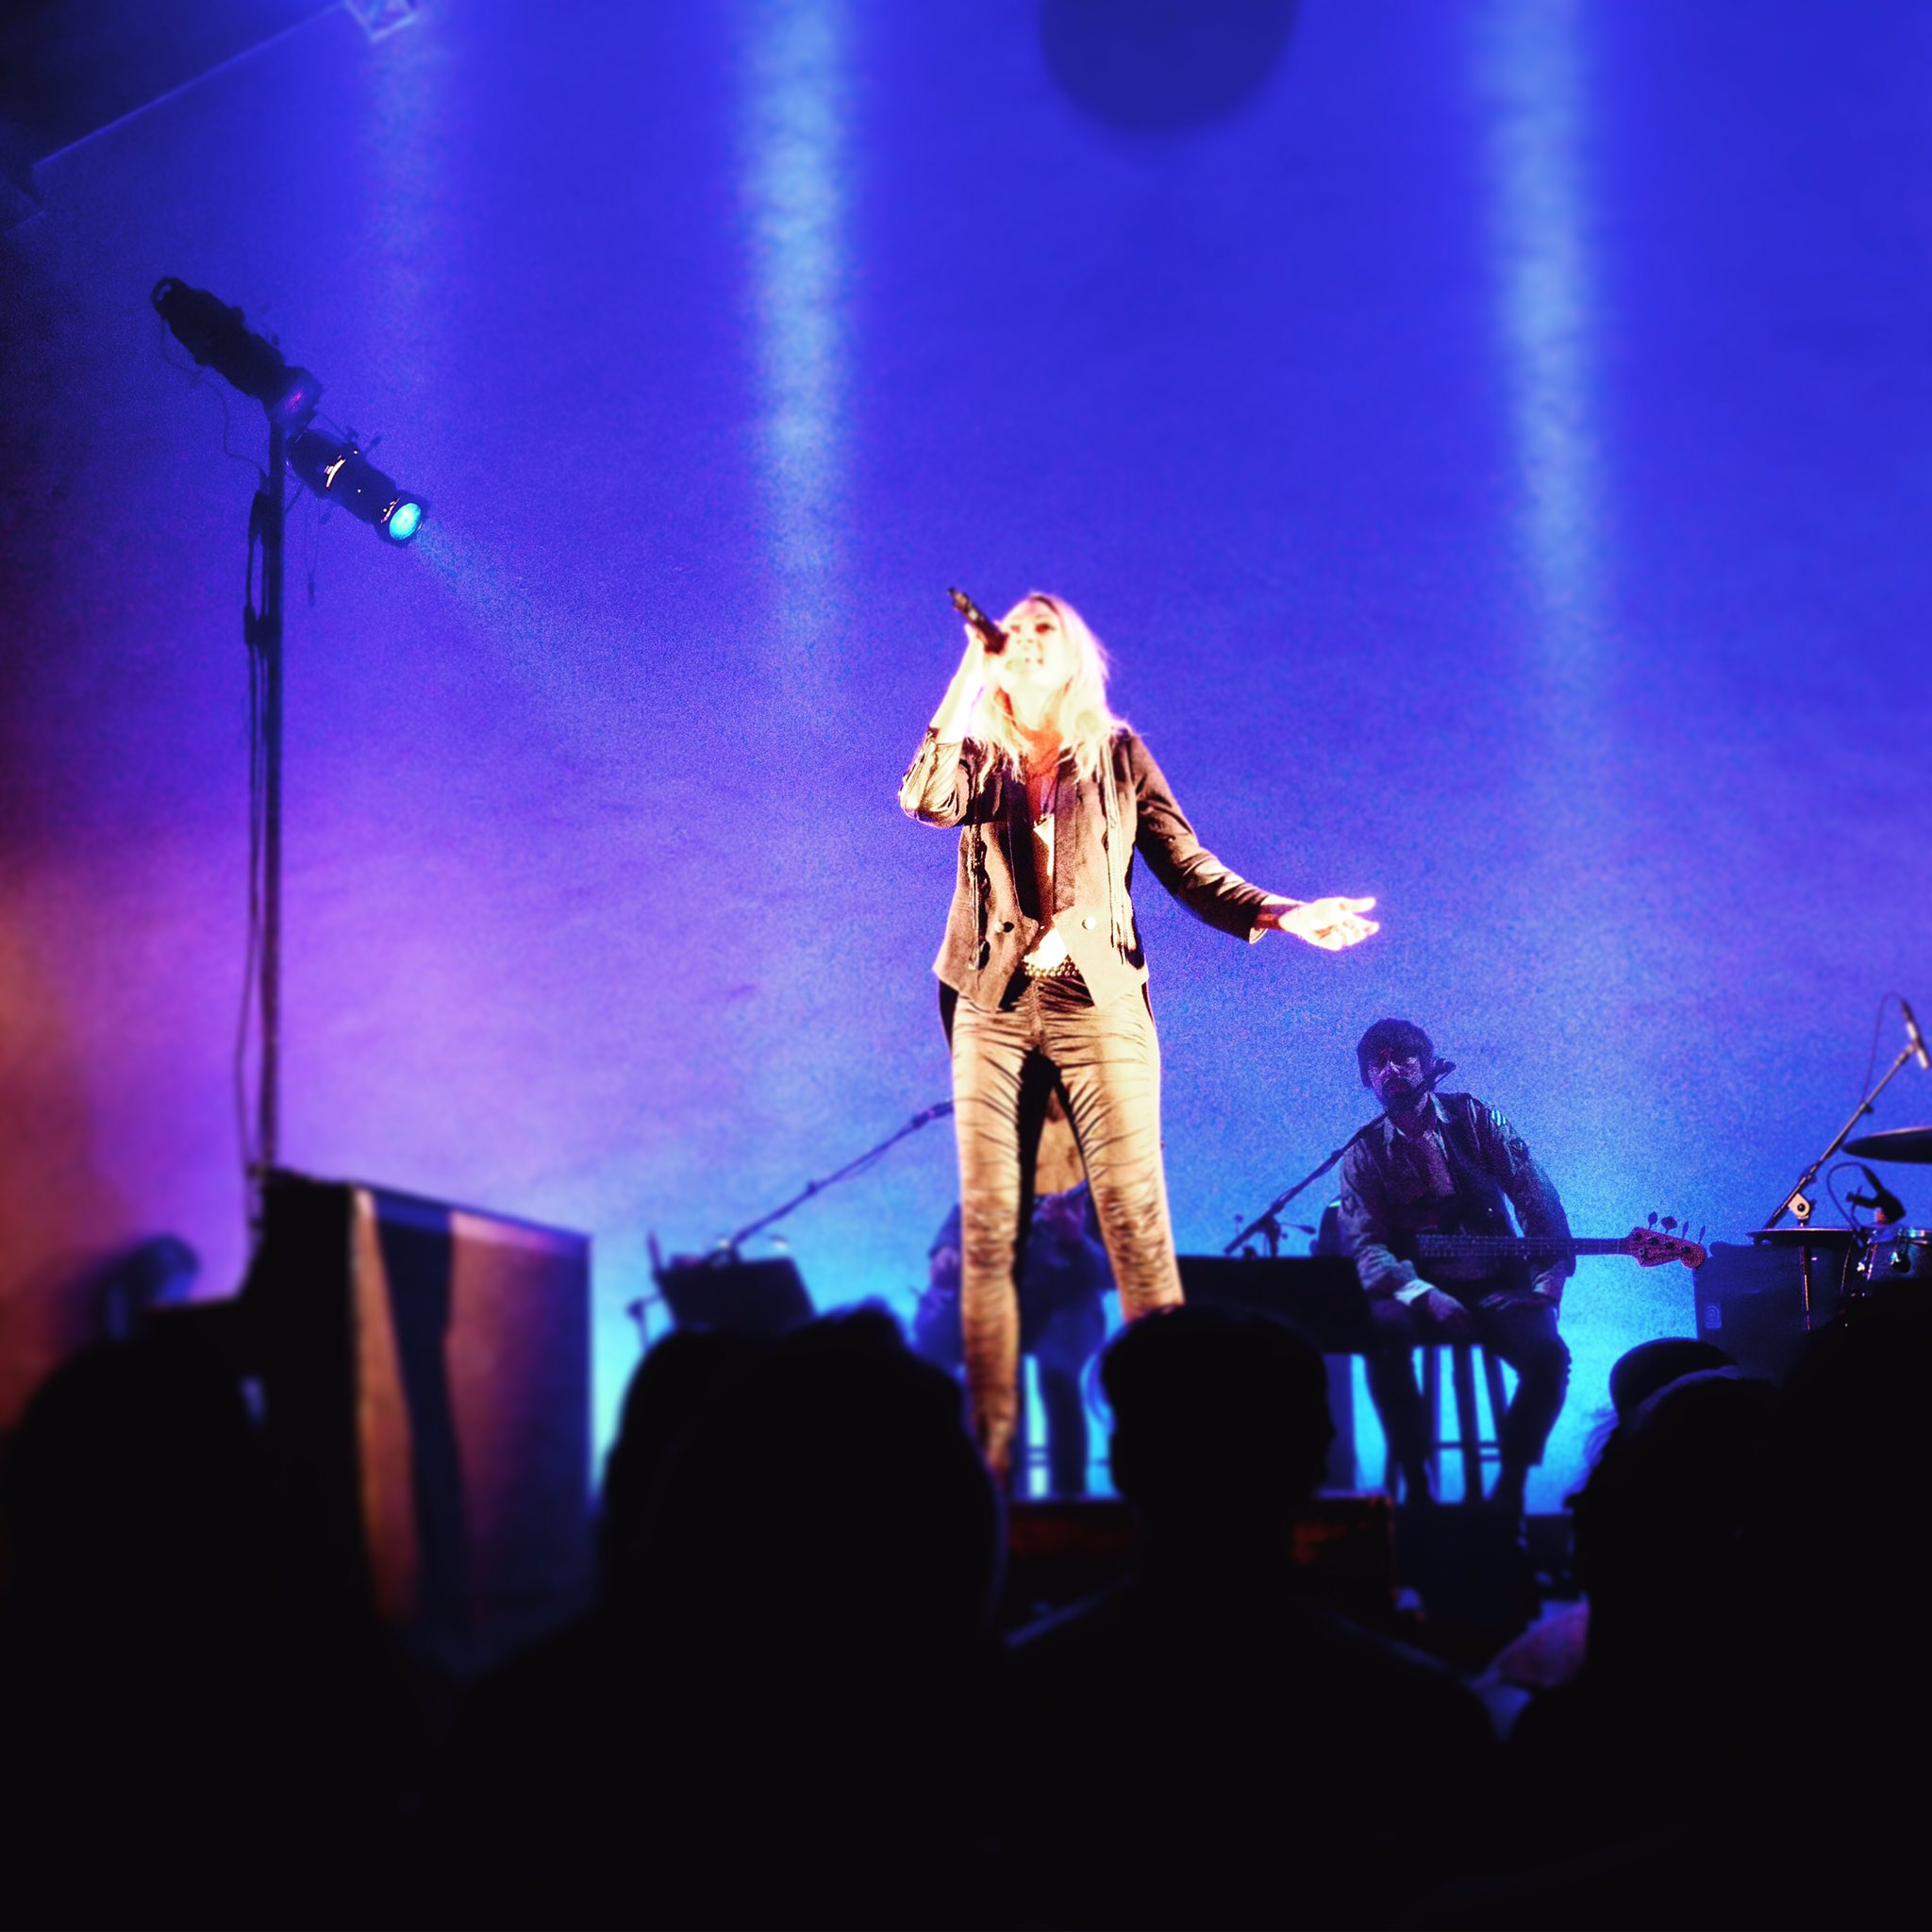 Emily Haines & The Soft Skeleton at the Hollywood Forever Cemetery was spectacular the other night. https://t.co/Yv5GafeDB8